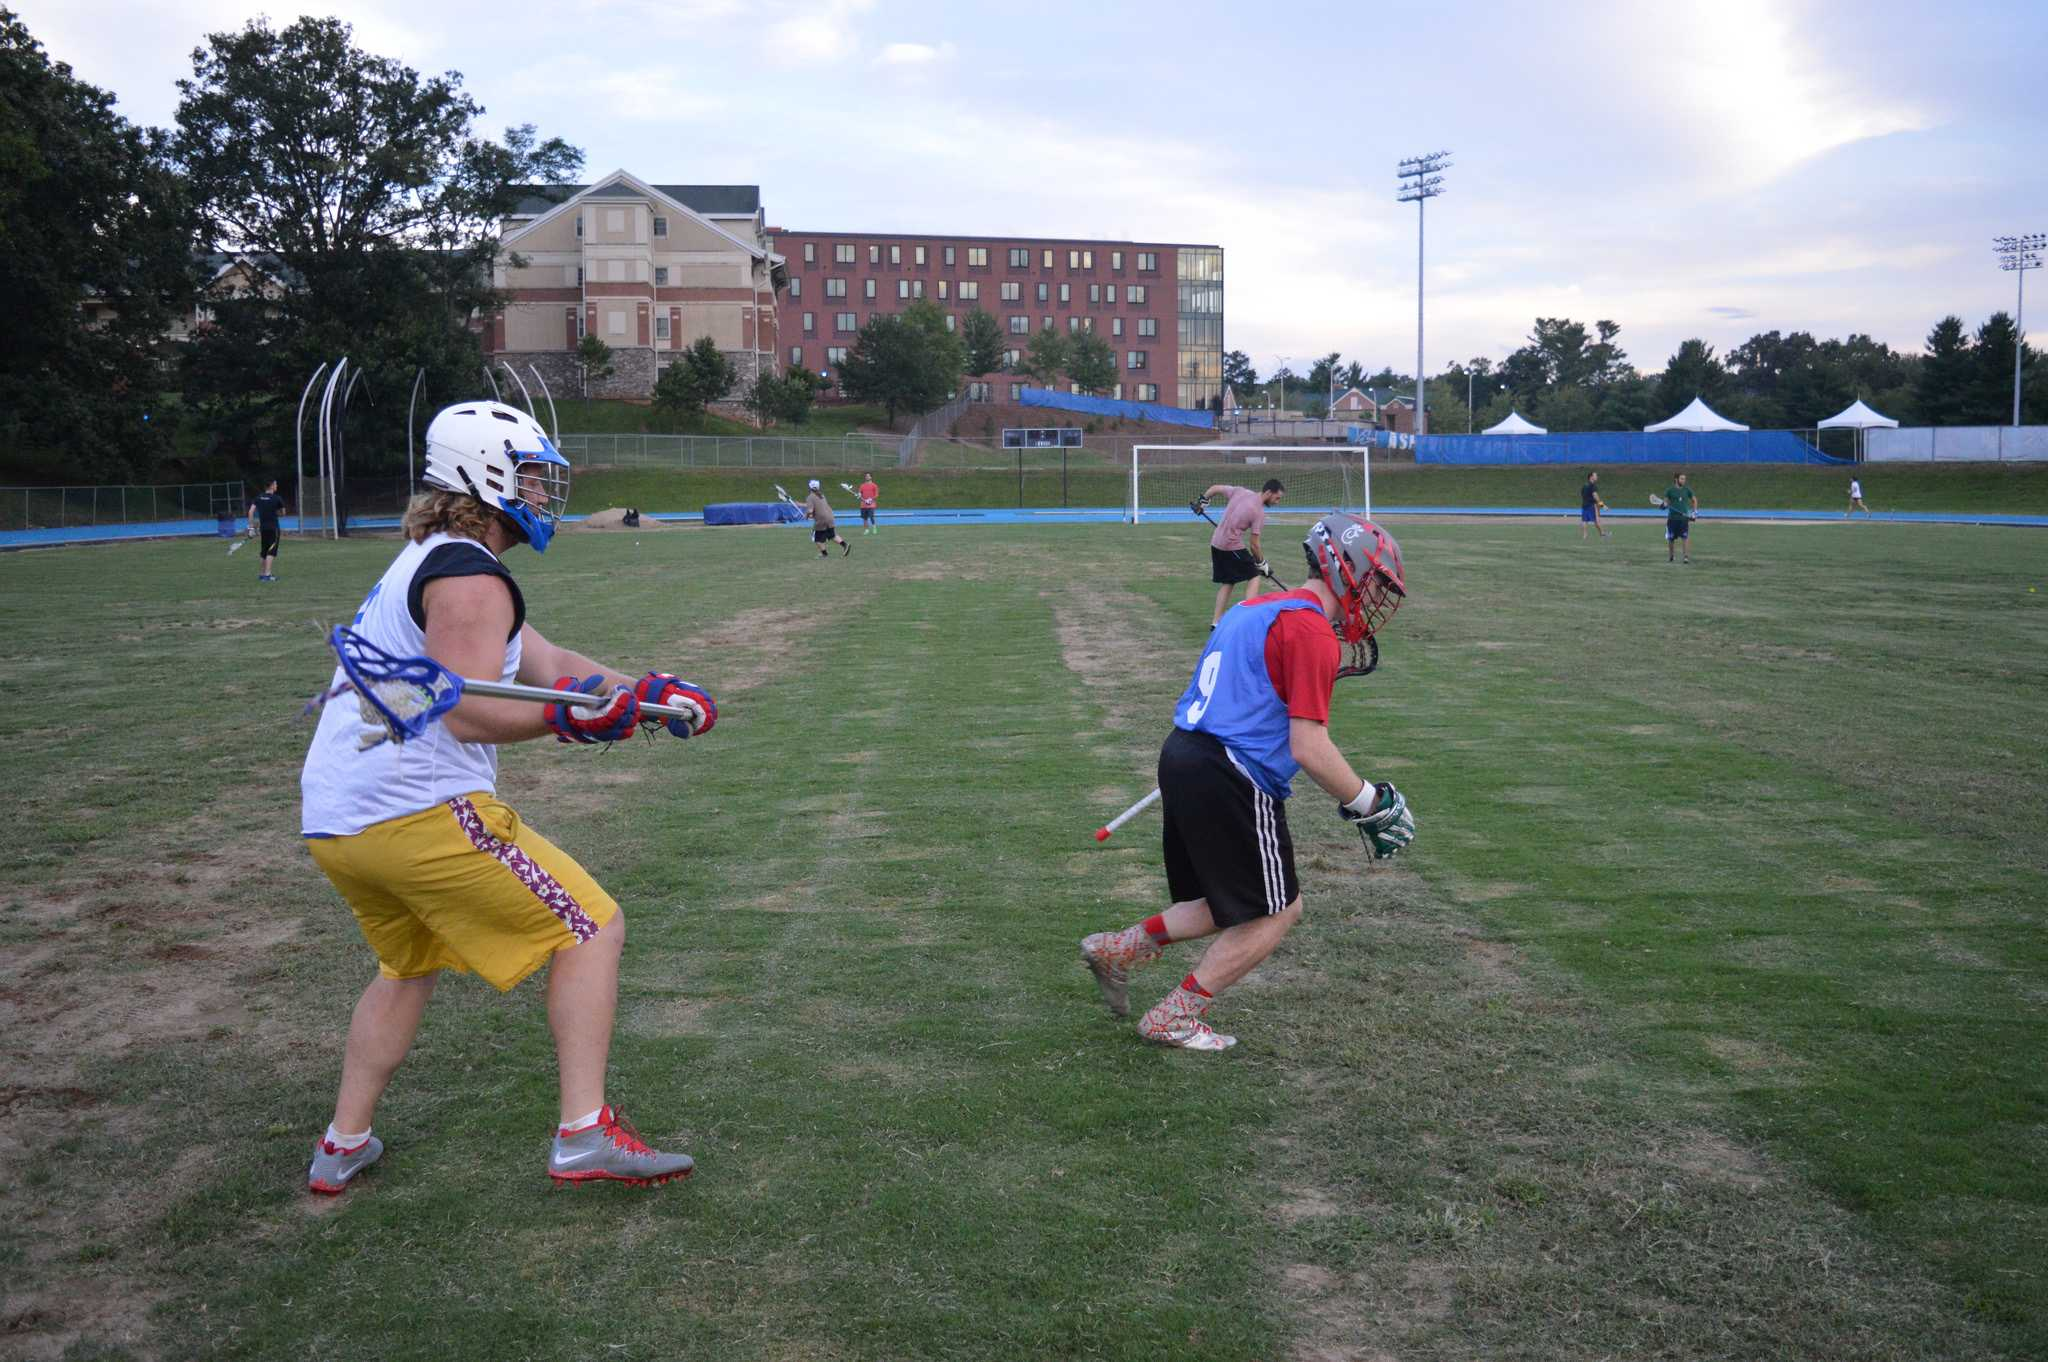 New lacrosse members gather to practice.  Photo by John Armstrong.